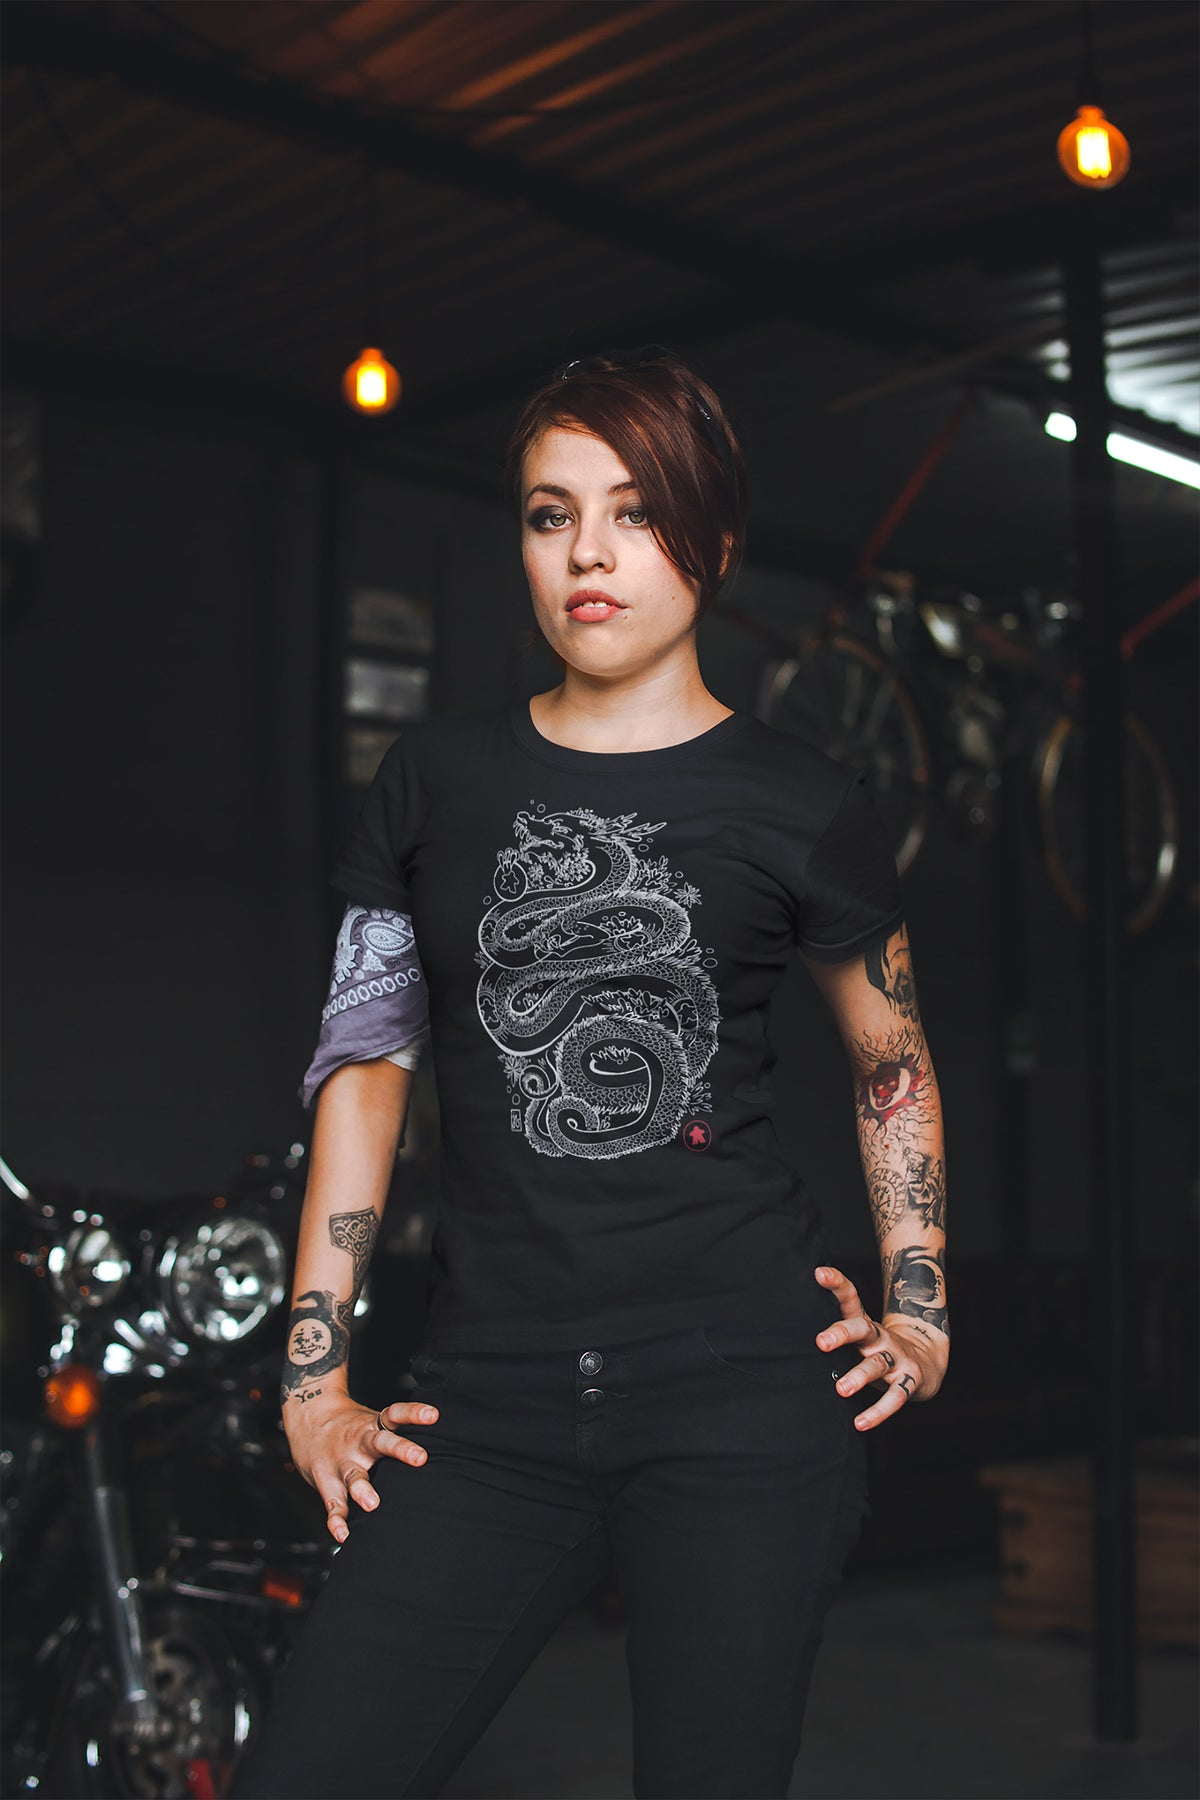 Dragon With The Meeple Tattoos Board Game T-Shirt Action Shot Women's